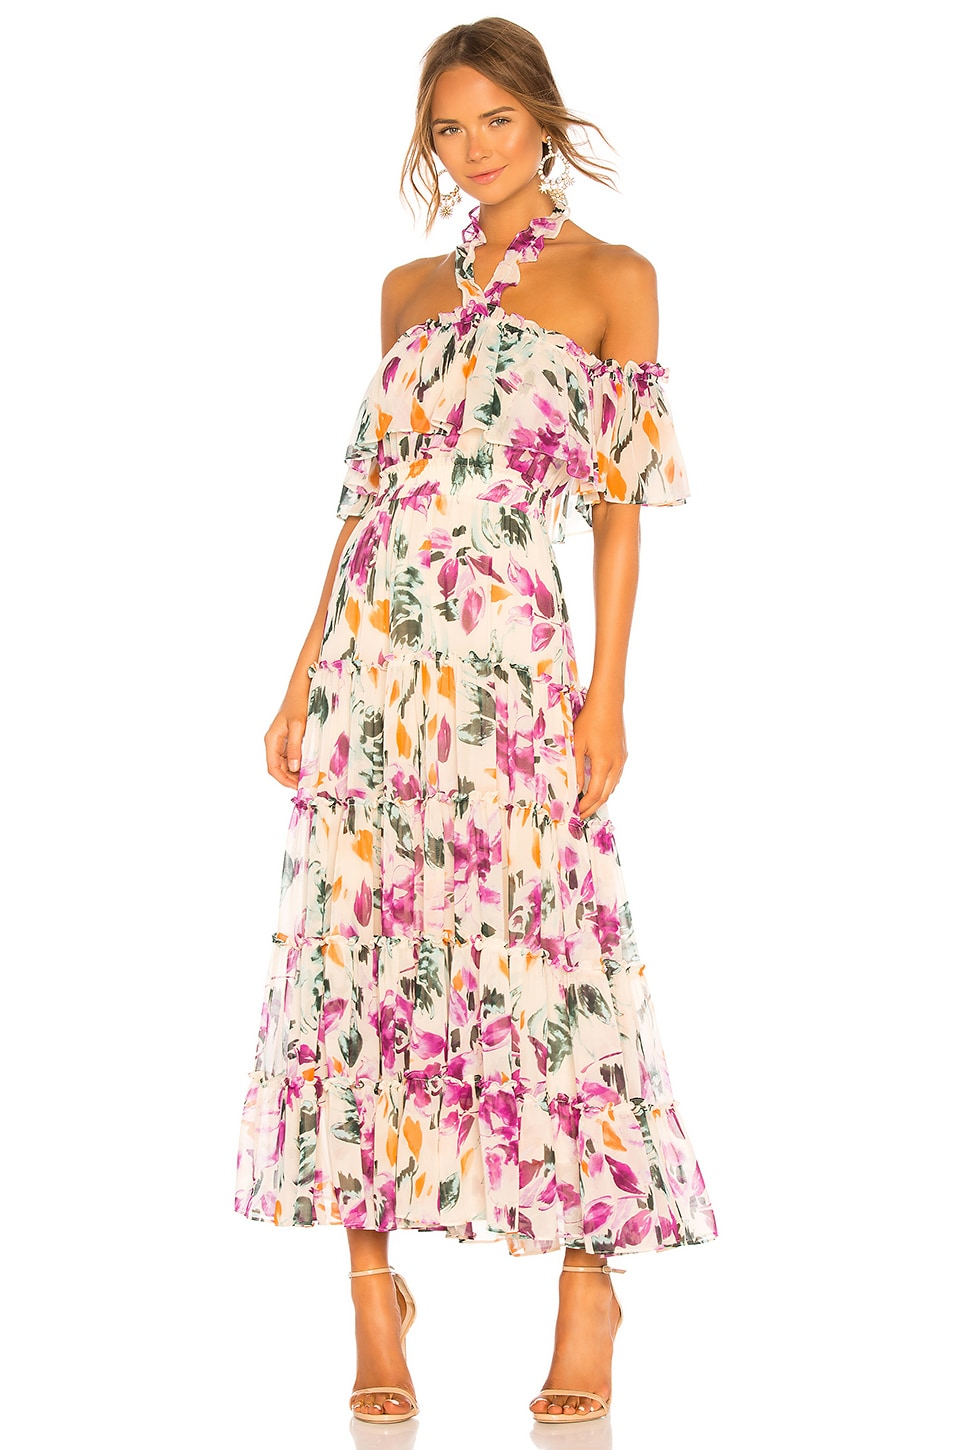 MISA Los Angeles Mila Dress in Yellow Floral